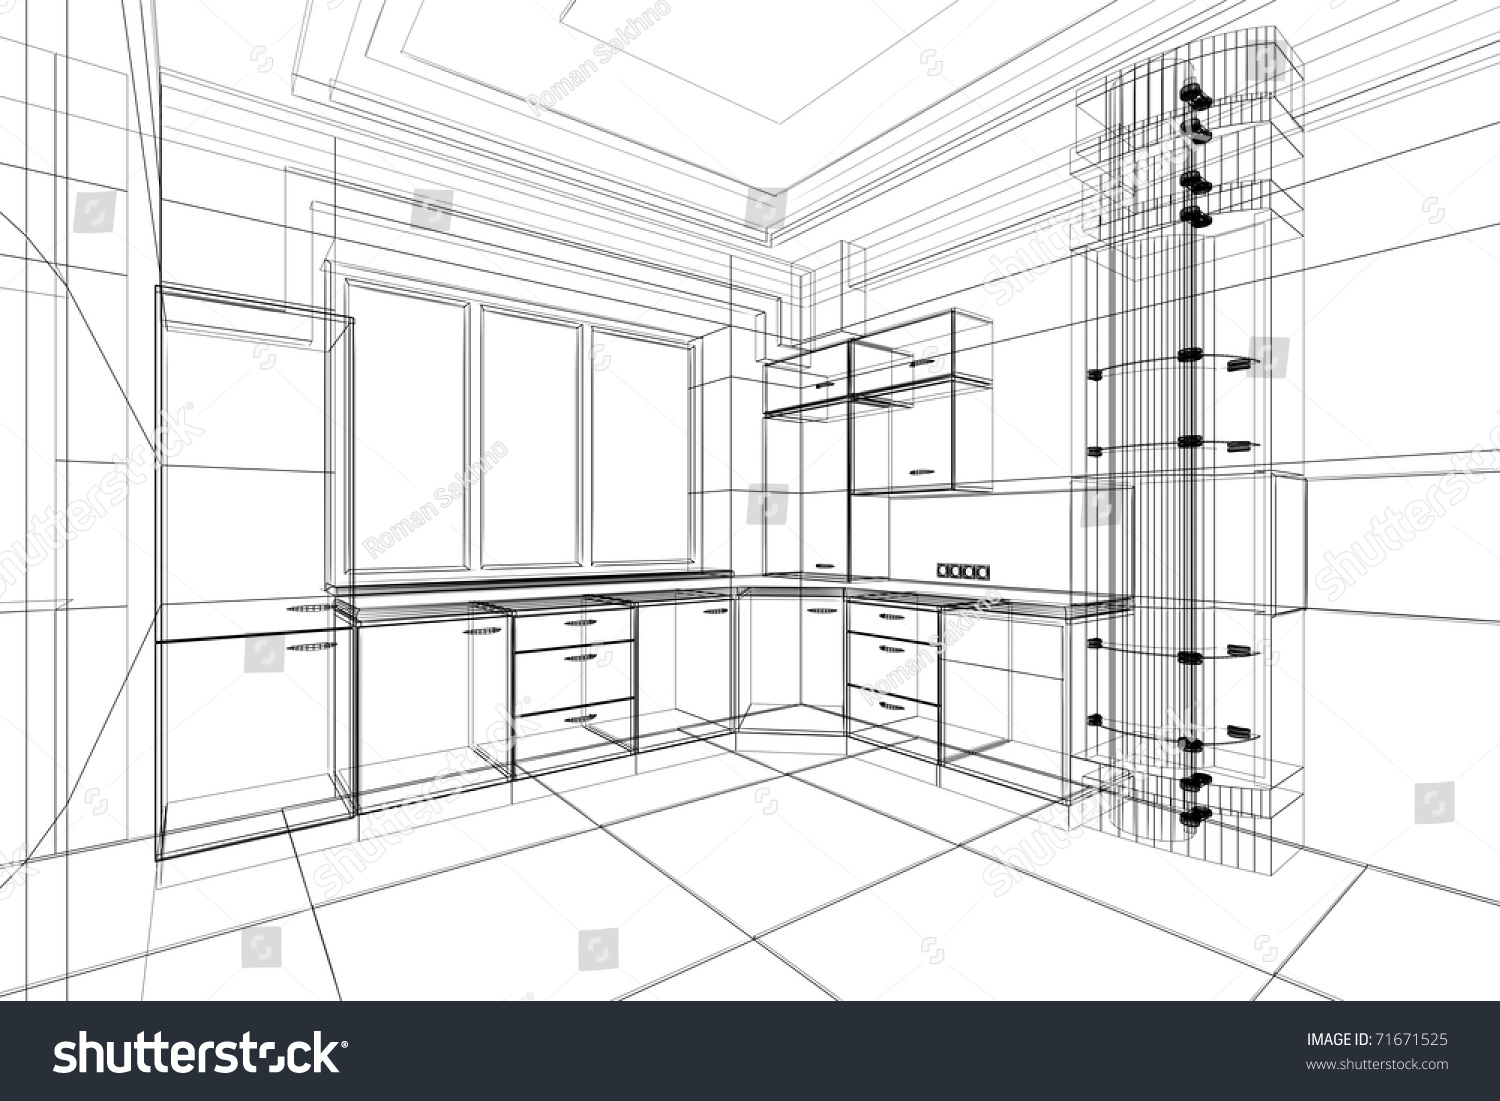 Abstract Sketch Design Interior Kitchen Stock Illustration